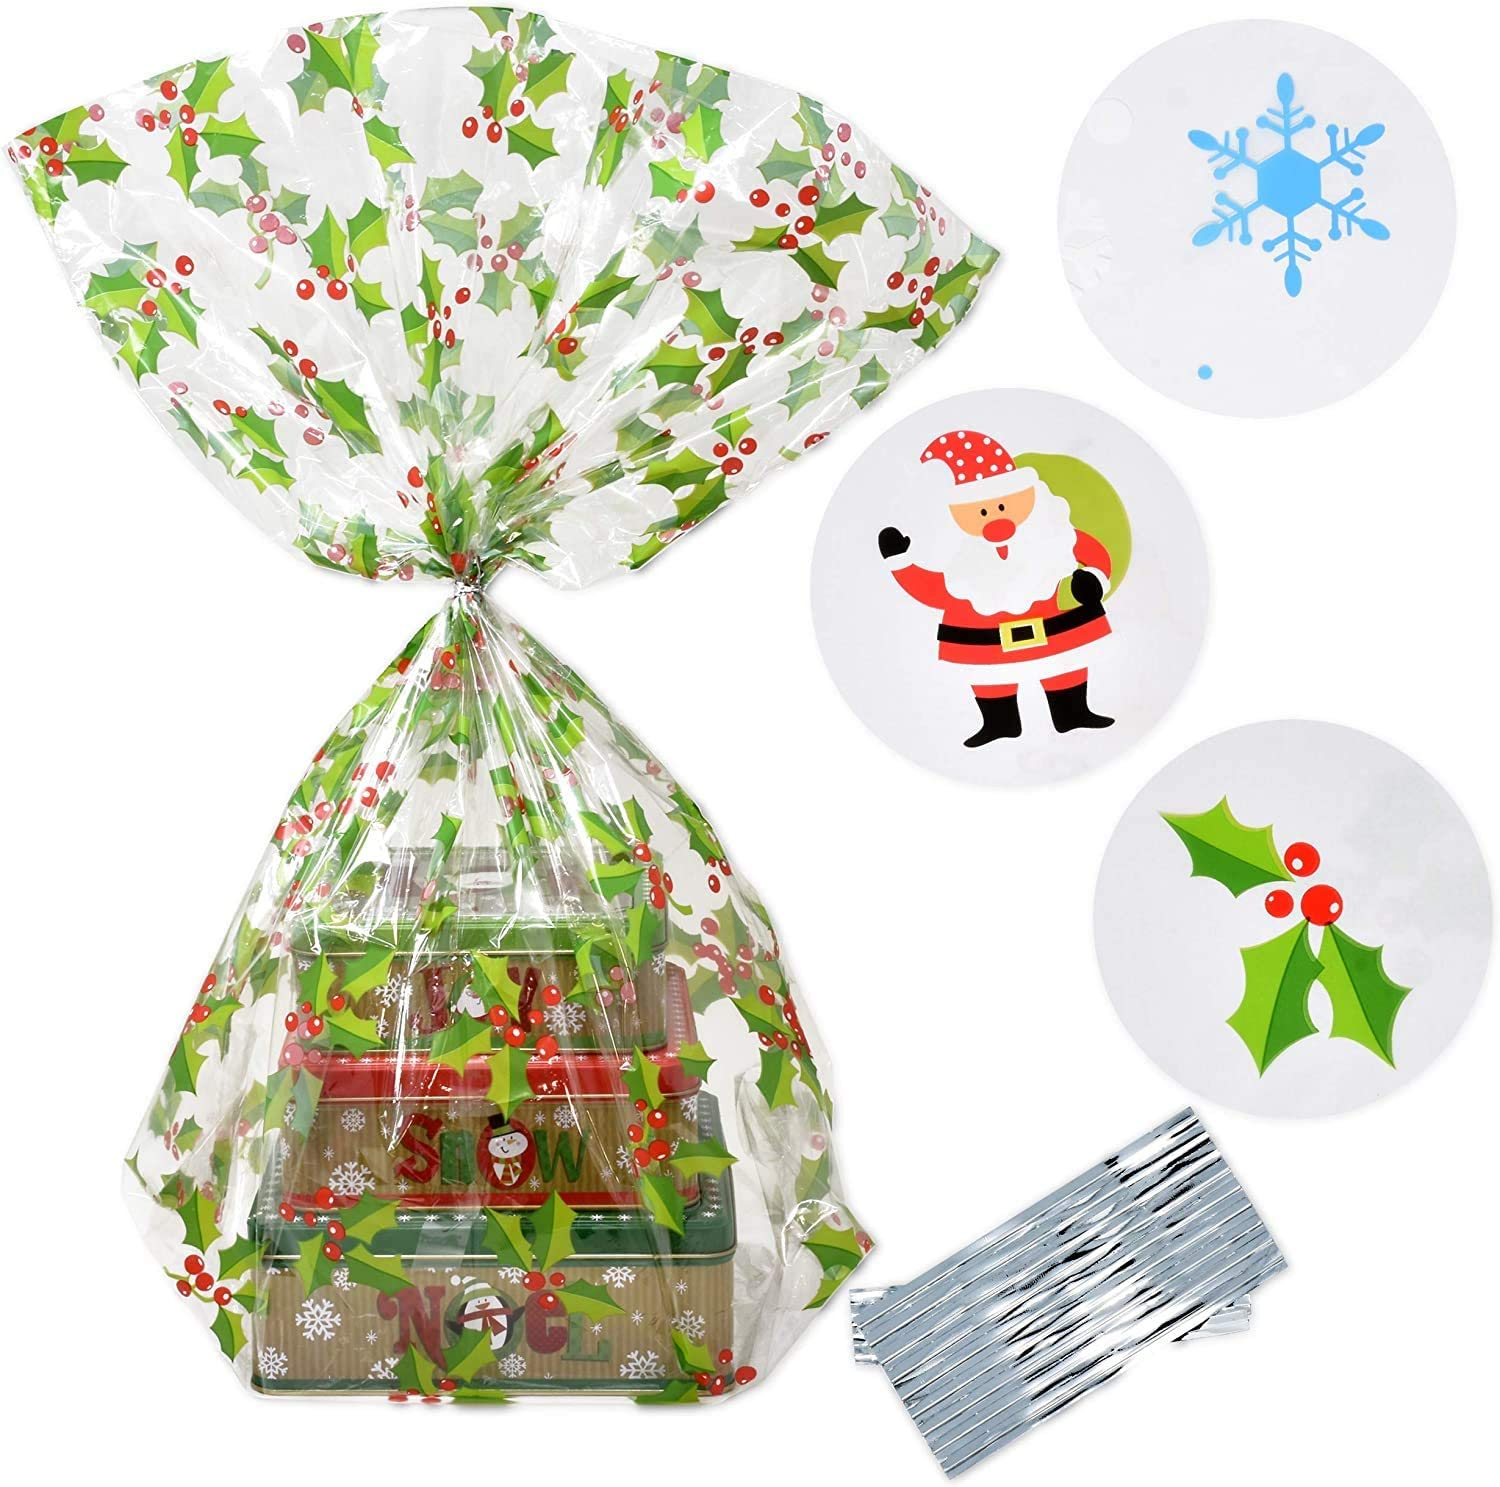 Gift Boutique Plastic Jumbo Christmas Cello Basket Bags, Christmas Cookie Tray Bags Pack of 12 Holiday Goody Party Favor Wrapping Bags 22